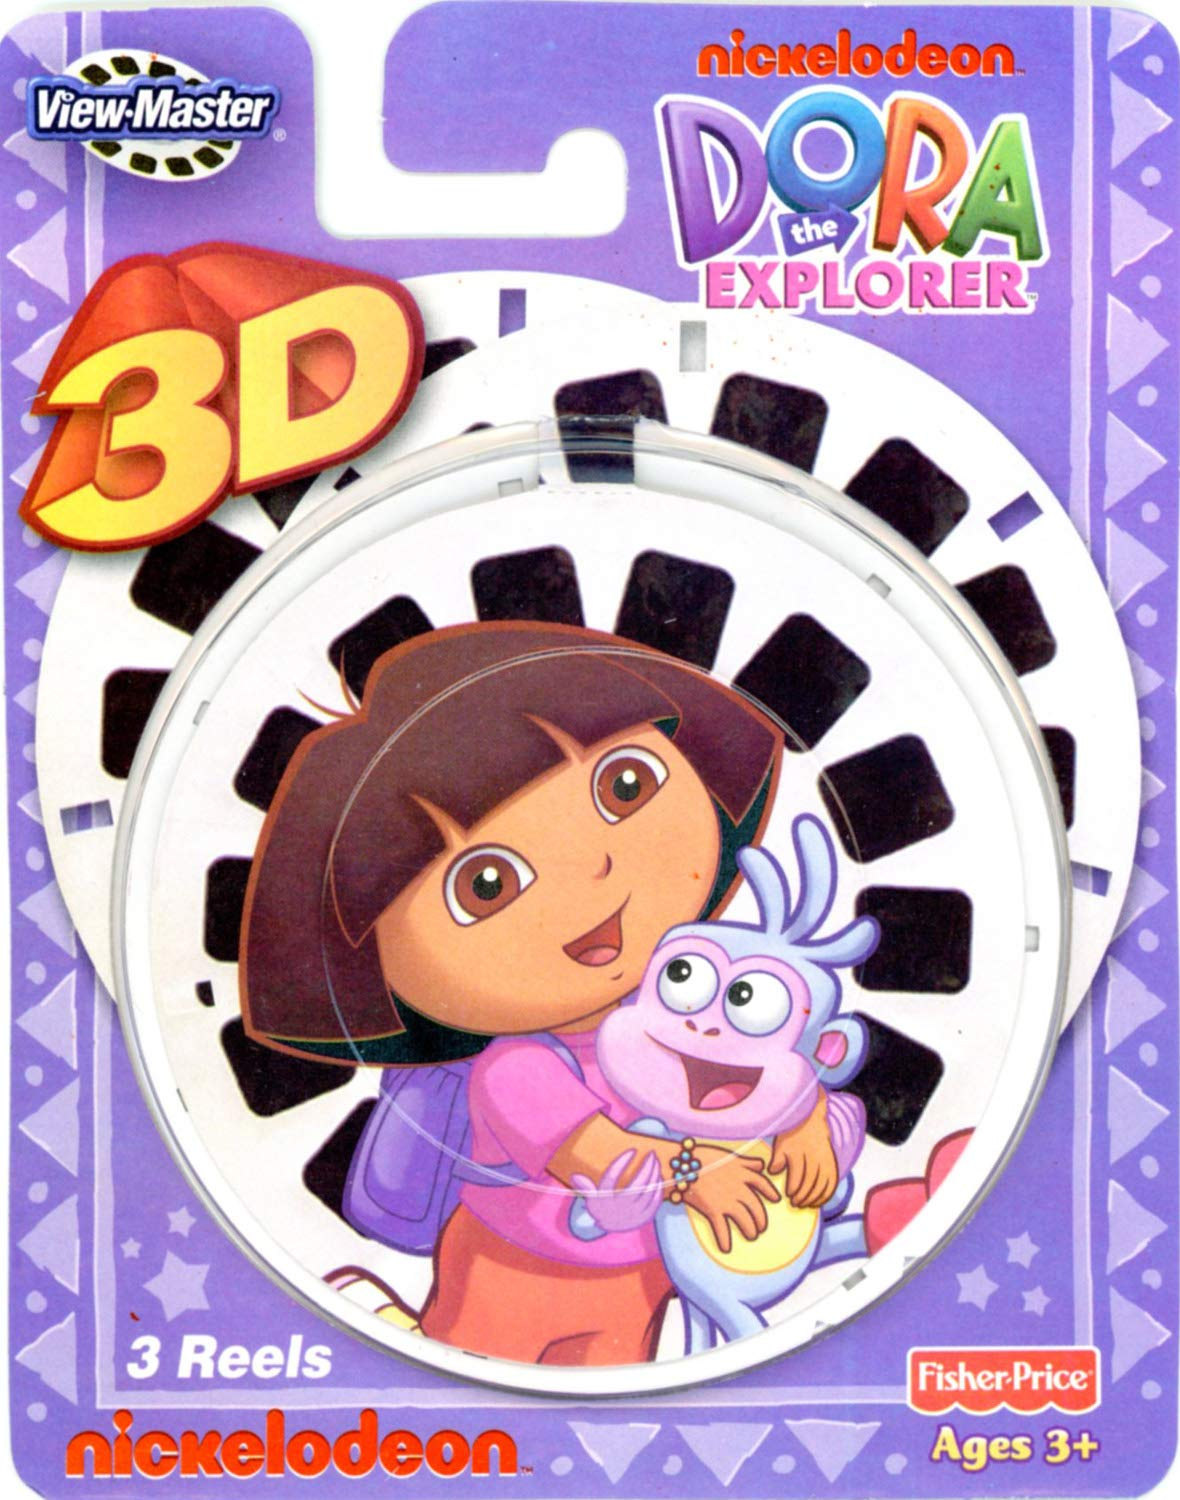 Dora The Explorer - Dora 3 - Classic ViewMaster 3 Reel Set by View Master (Image #1)